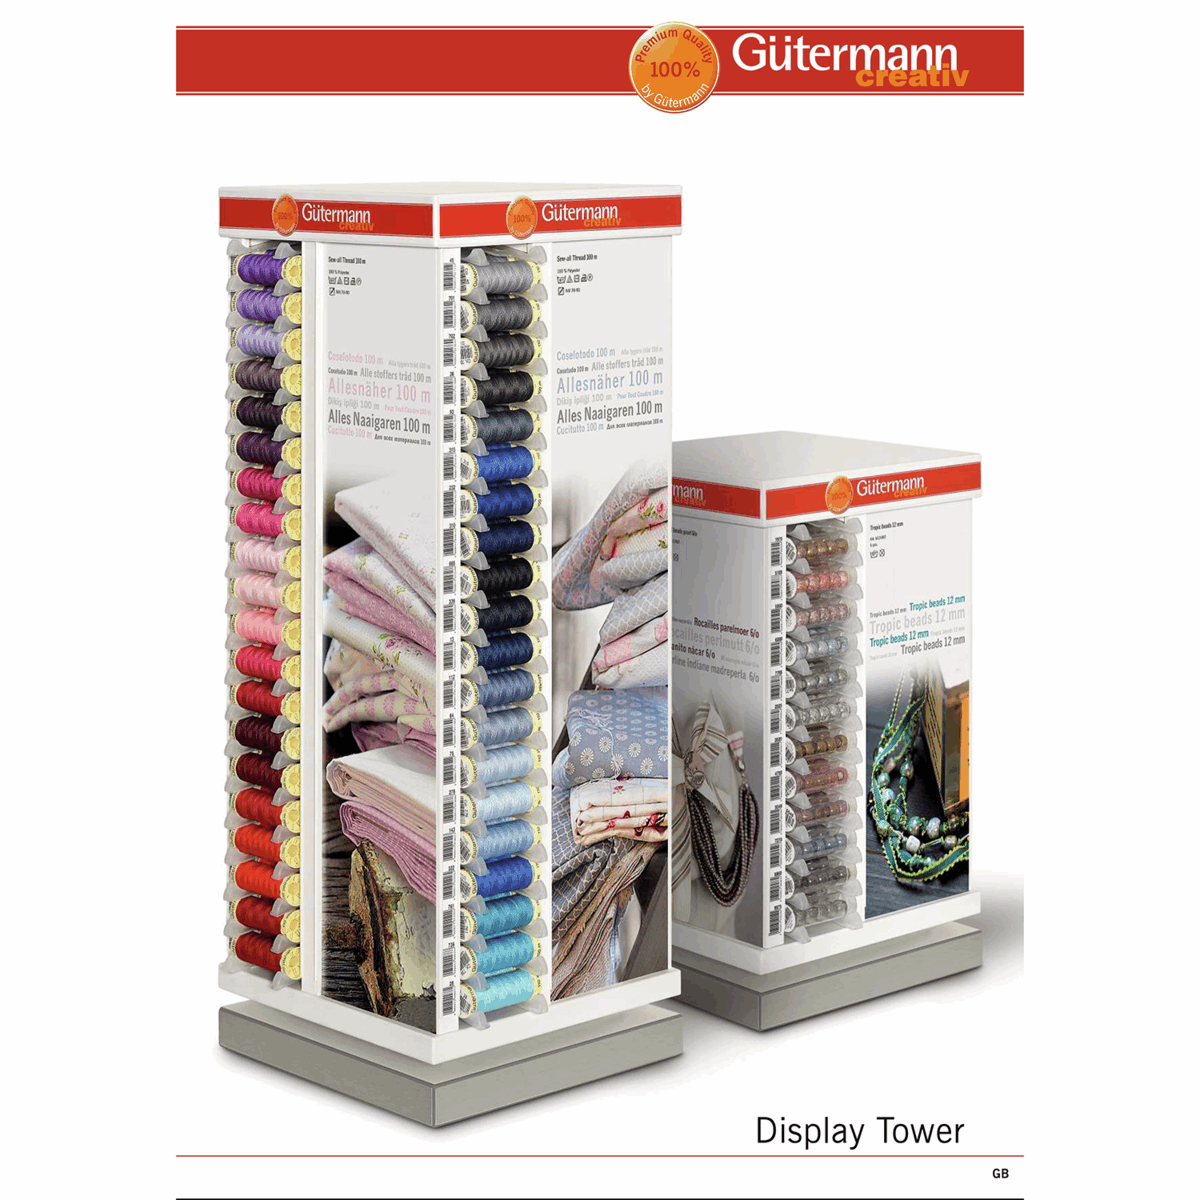 Picture of Gutermann: Display Tower: Brochure